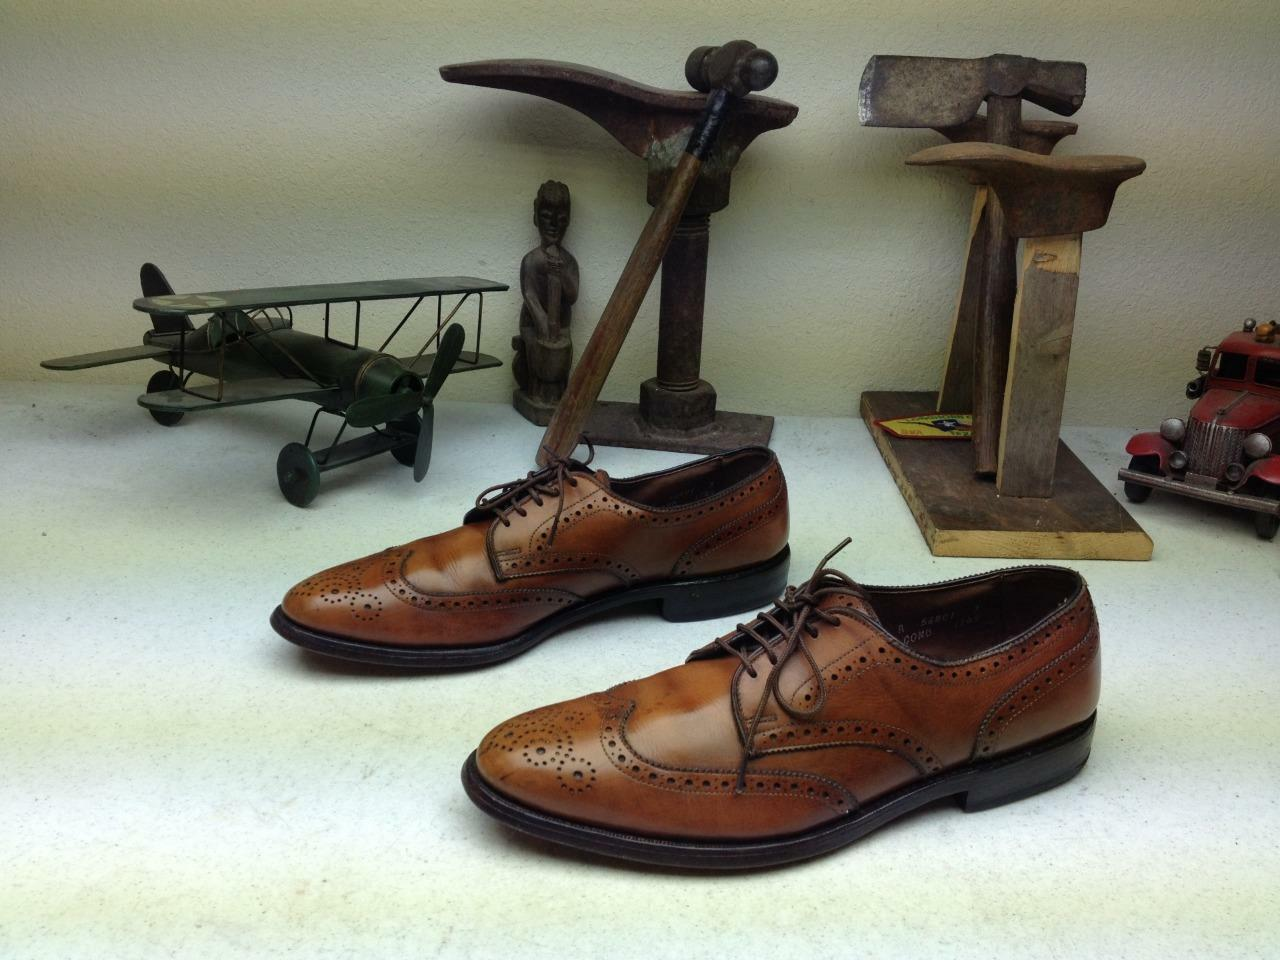 DISTRESSED BROWN BROWN BROWN WING TIP ALLEN EDMONDS CONCORD LACE UP SATURDAY SHOES 9.5 A 5dae4b